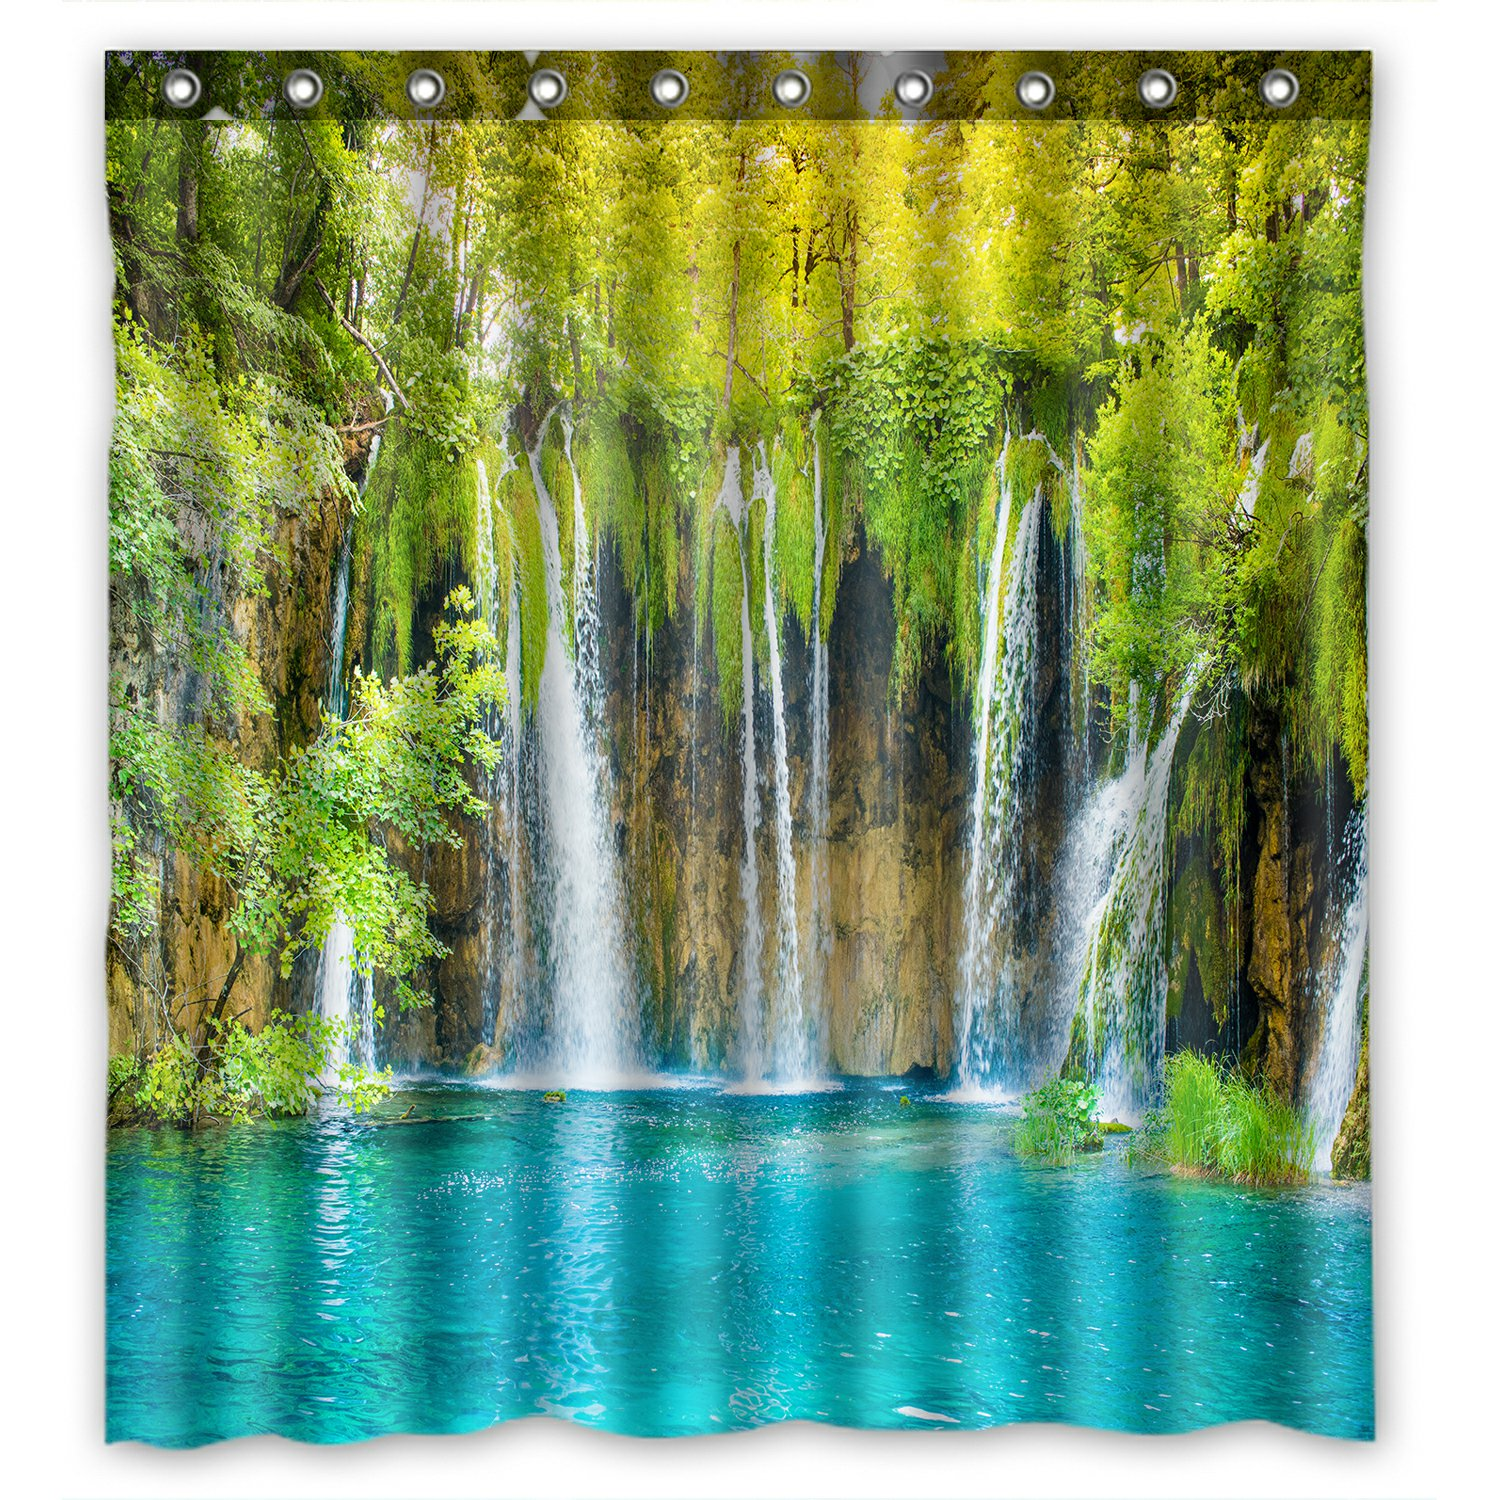 Forest Lake Fabric Home: PHFZK Nature Scenery Shower Curtain, Beautiful Waterfall